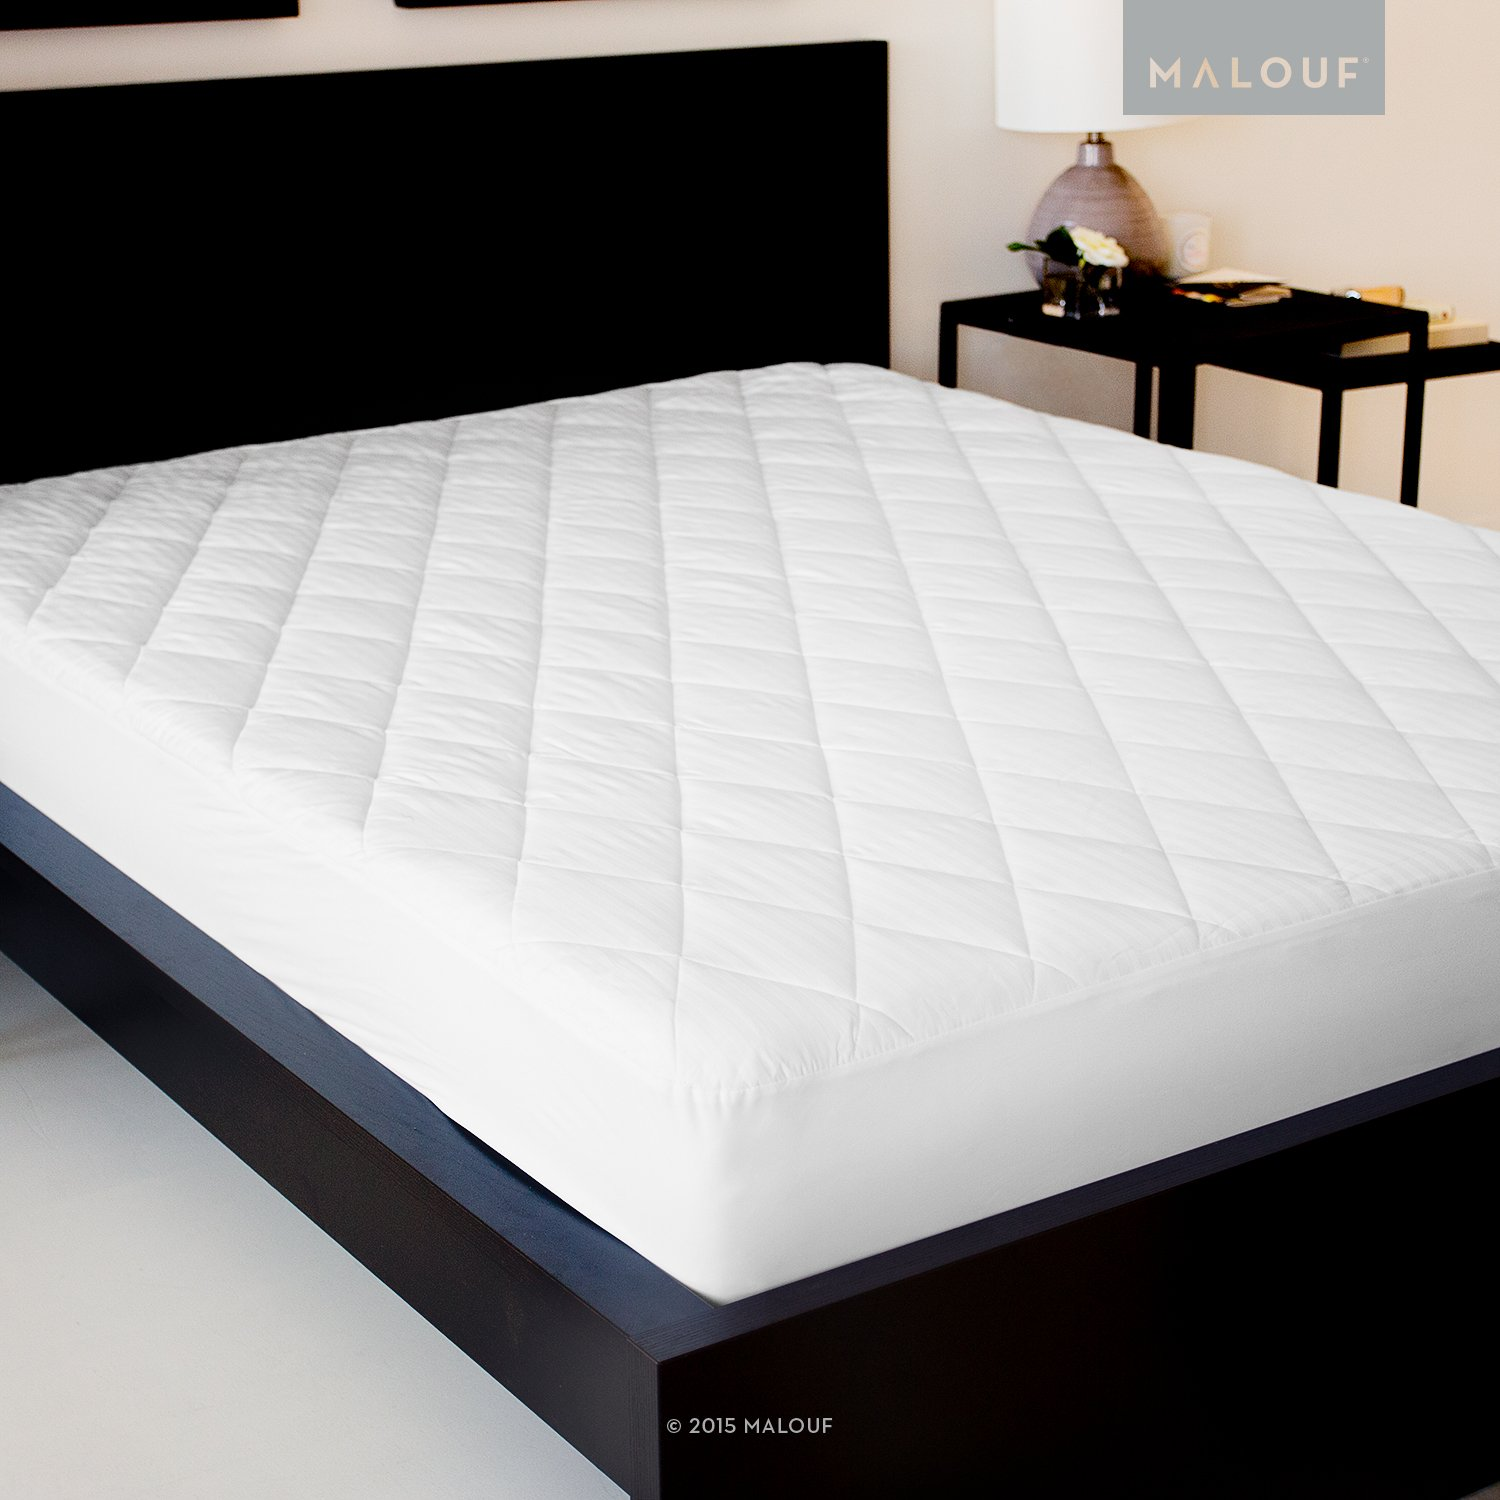 pad and topper toppers air myergobed king feather of house size fantastic important heated superb stunning euroquilt top down impressive highest plush dazzling duck valuable cool mattress rated f capella full fascinate best pillow eastman